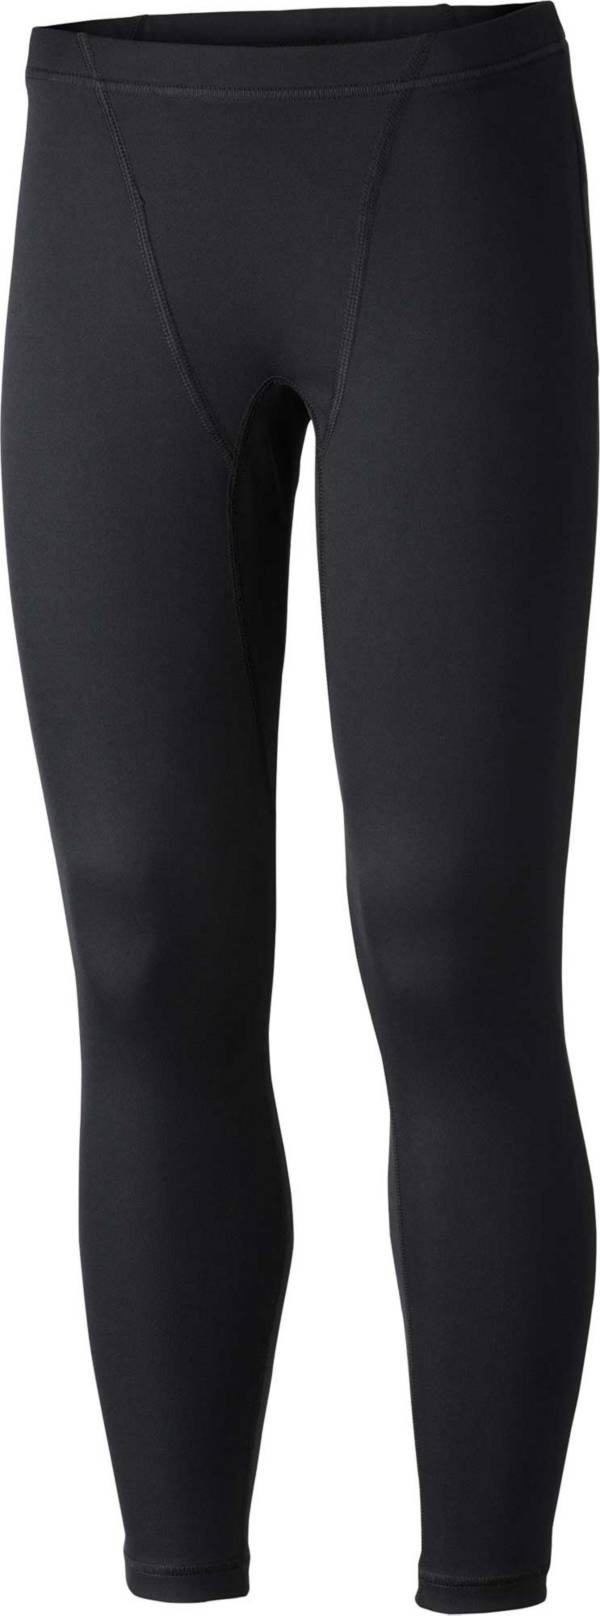 Columbia Youth Midweight Base Layer 2 Tights product image